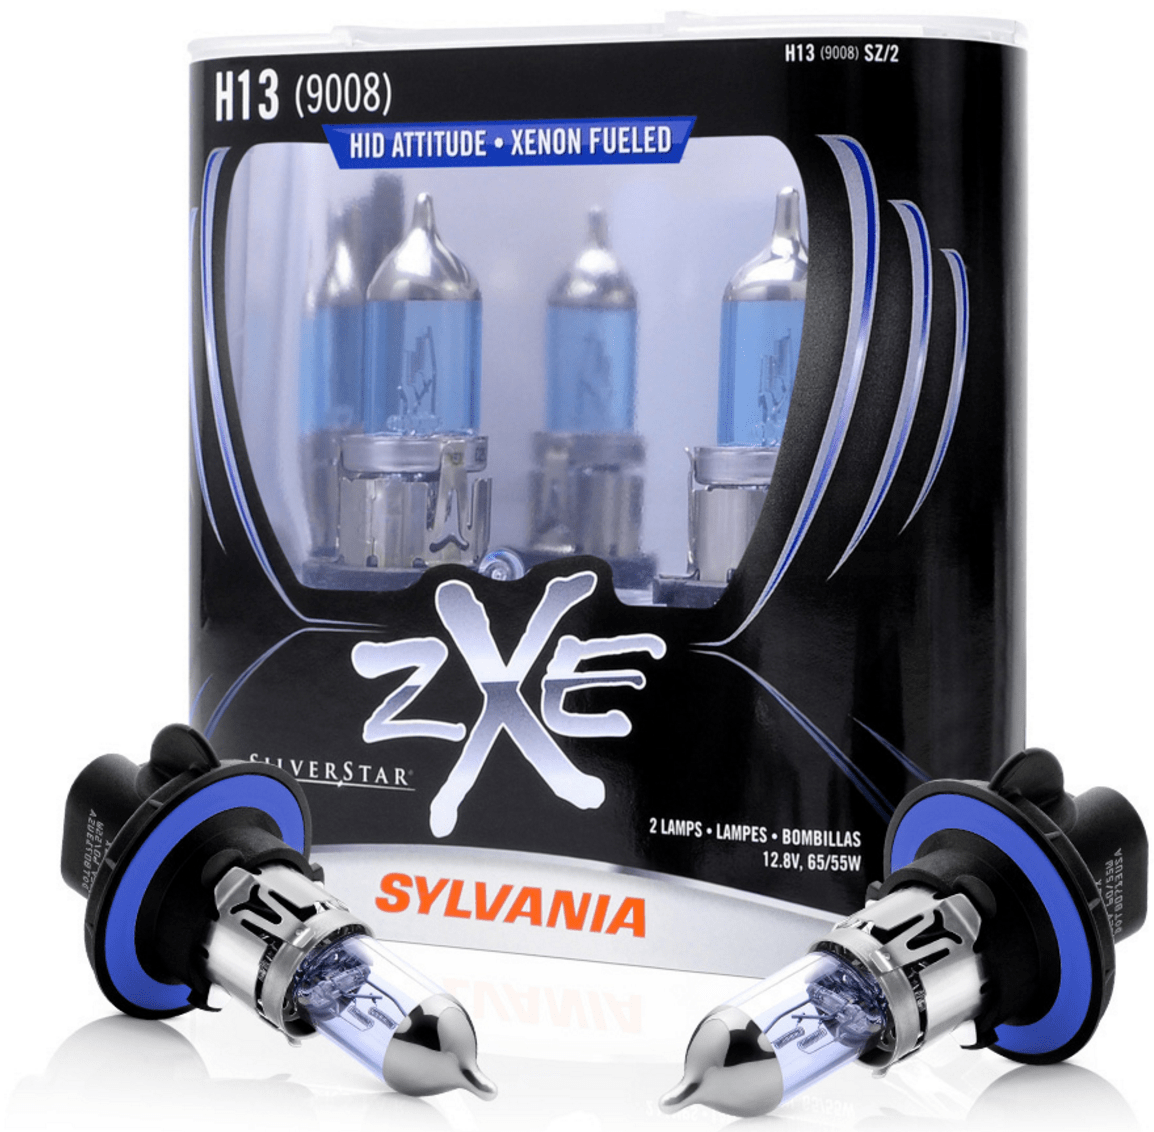 Sylvania SilverStar zXe Headlight Review